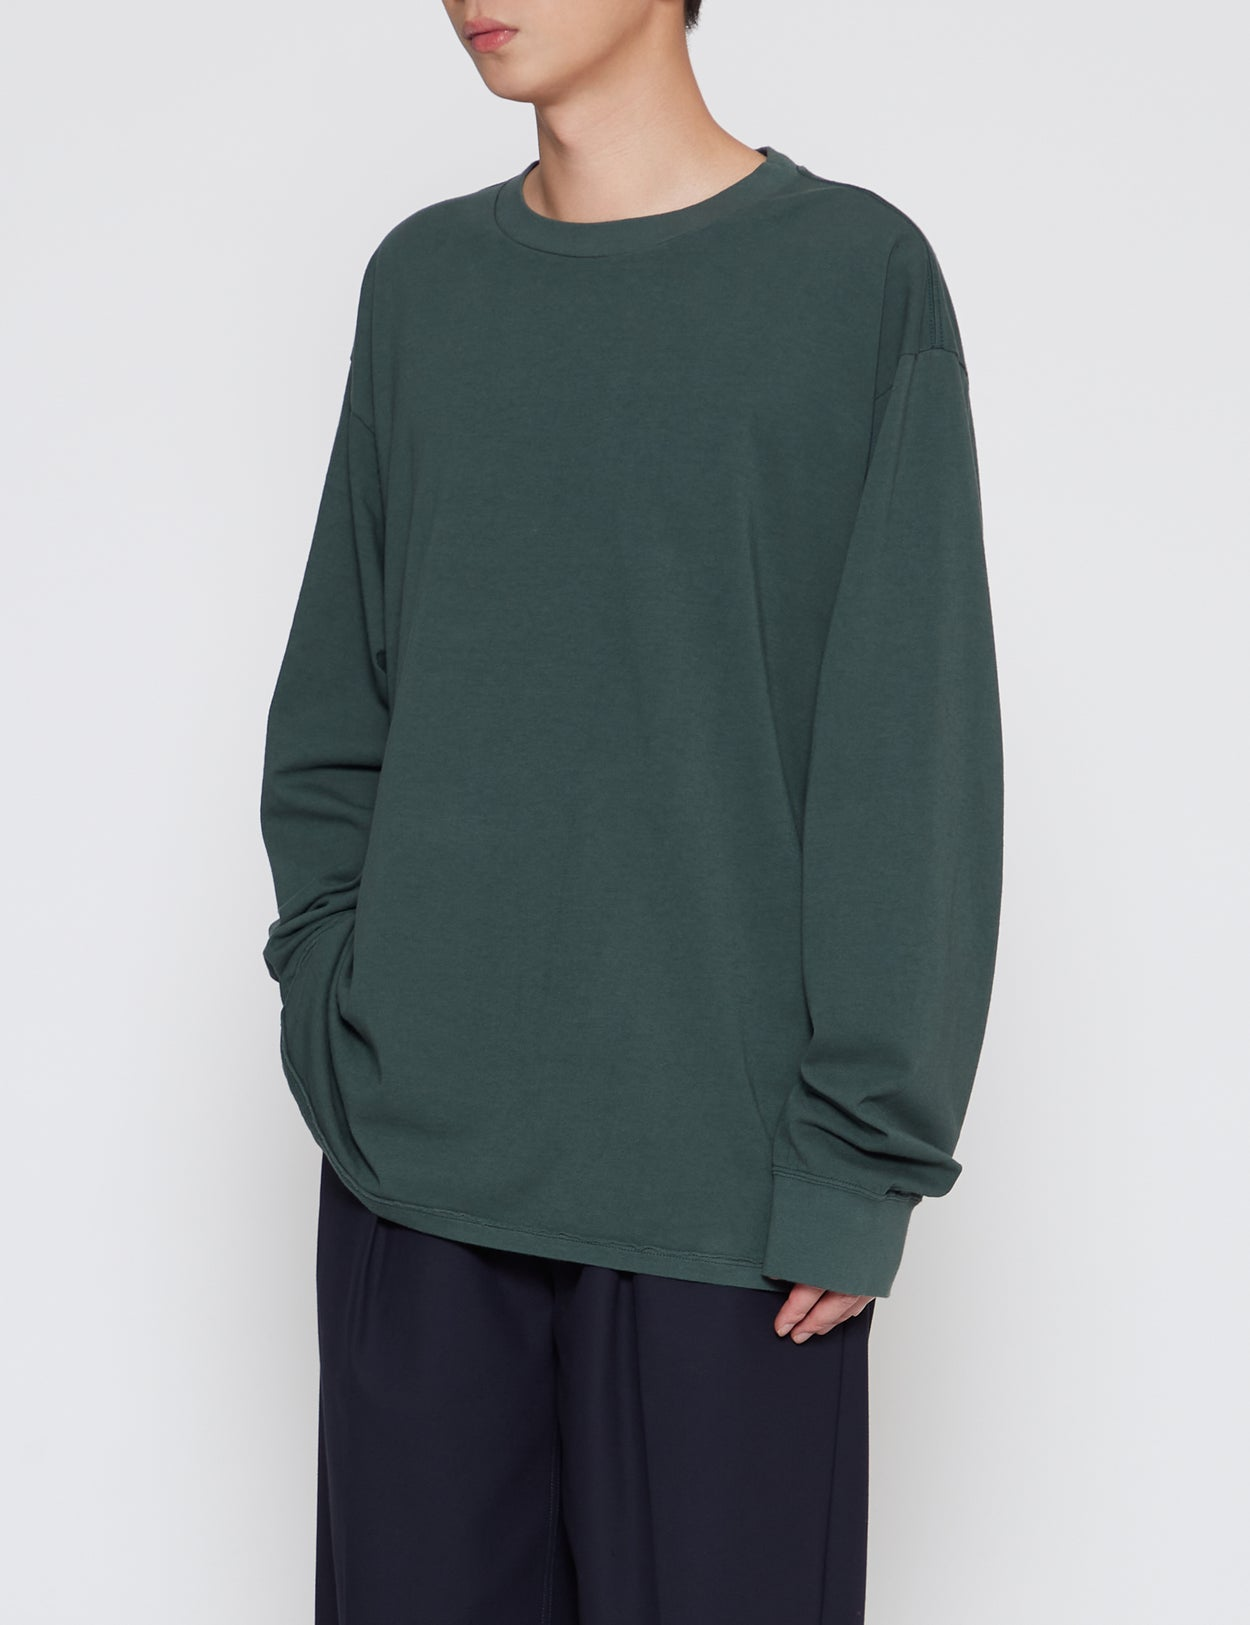 GREEN LONG SLEEVE T-SHIRT